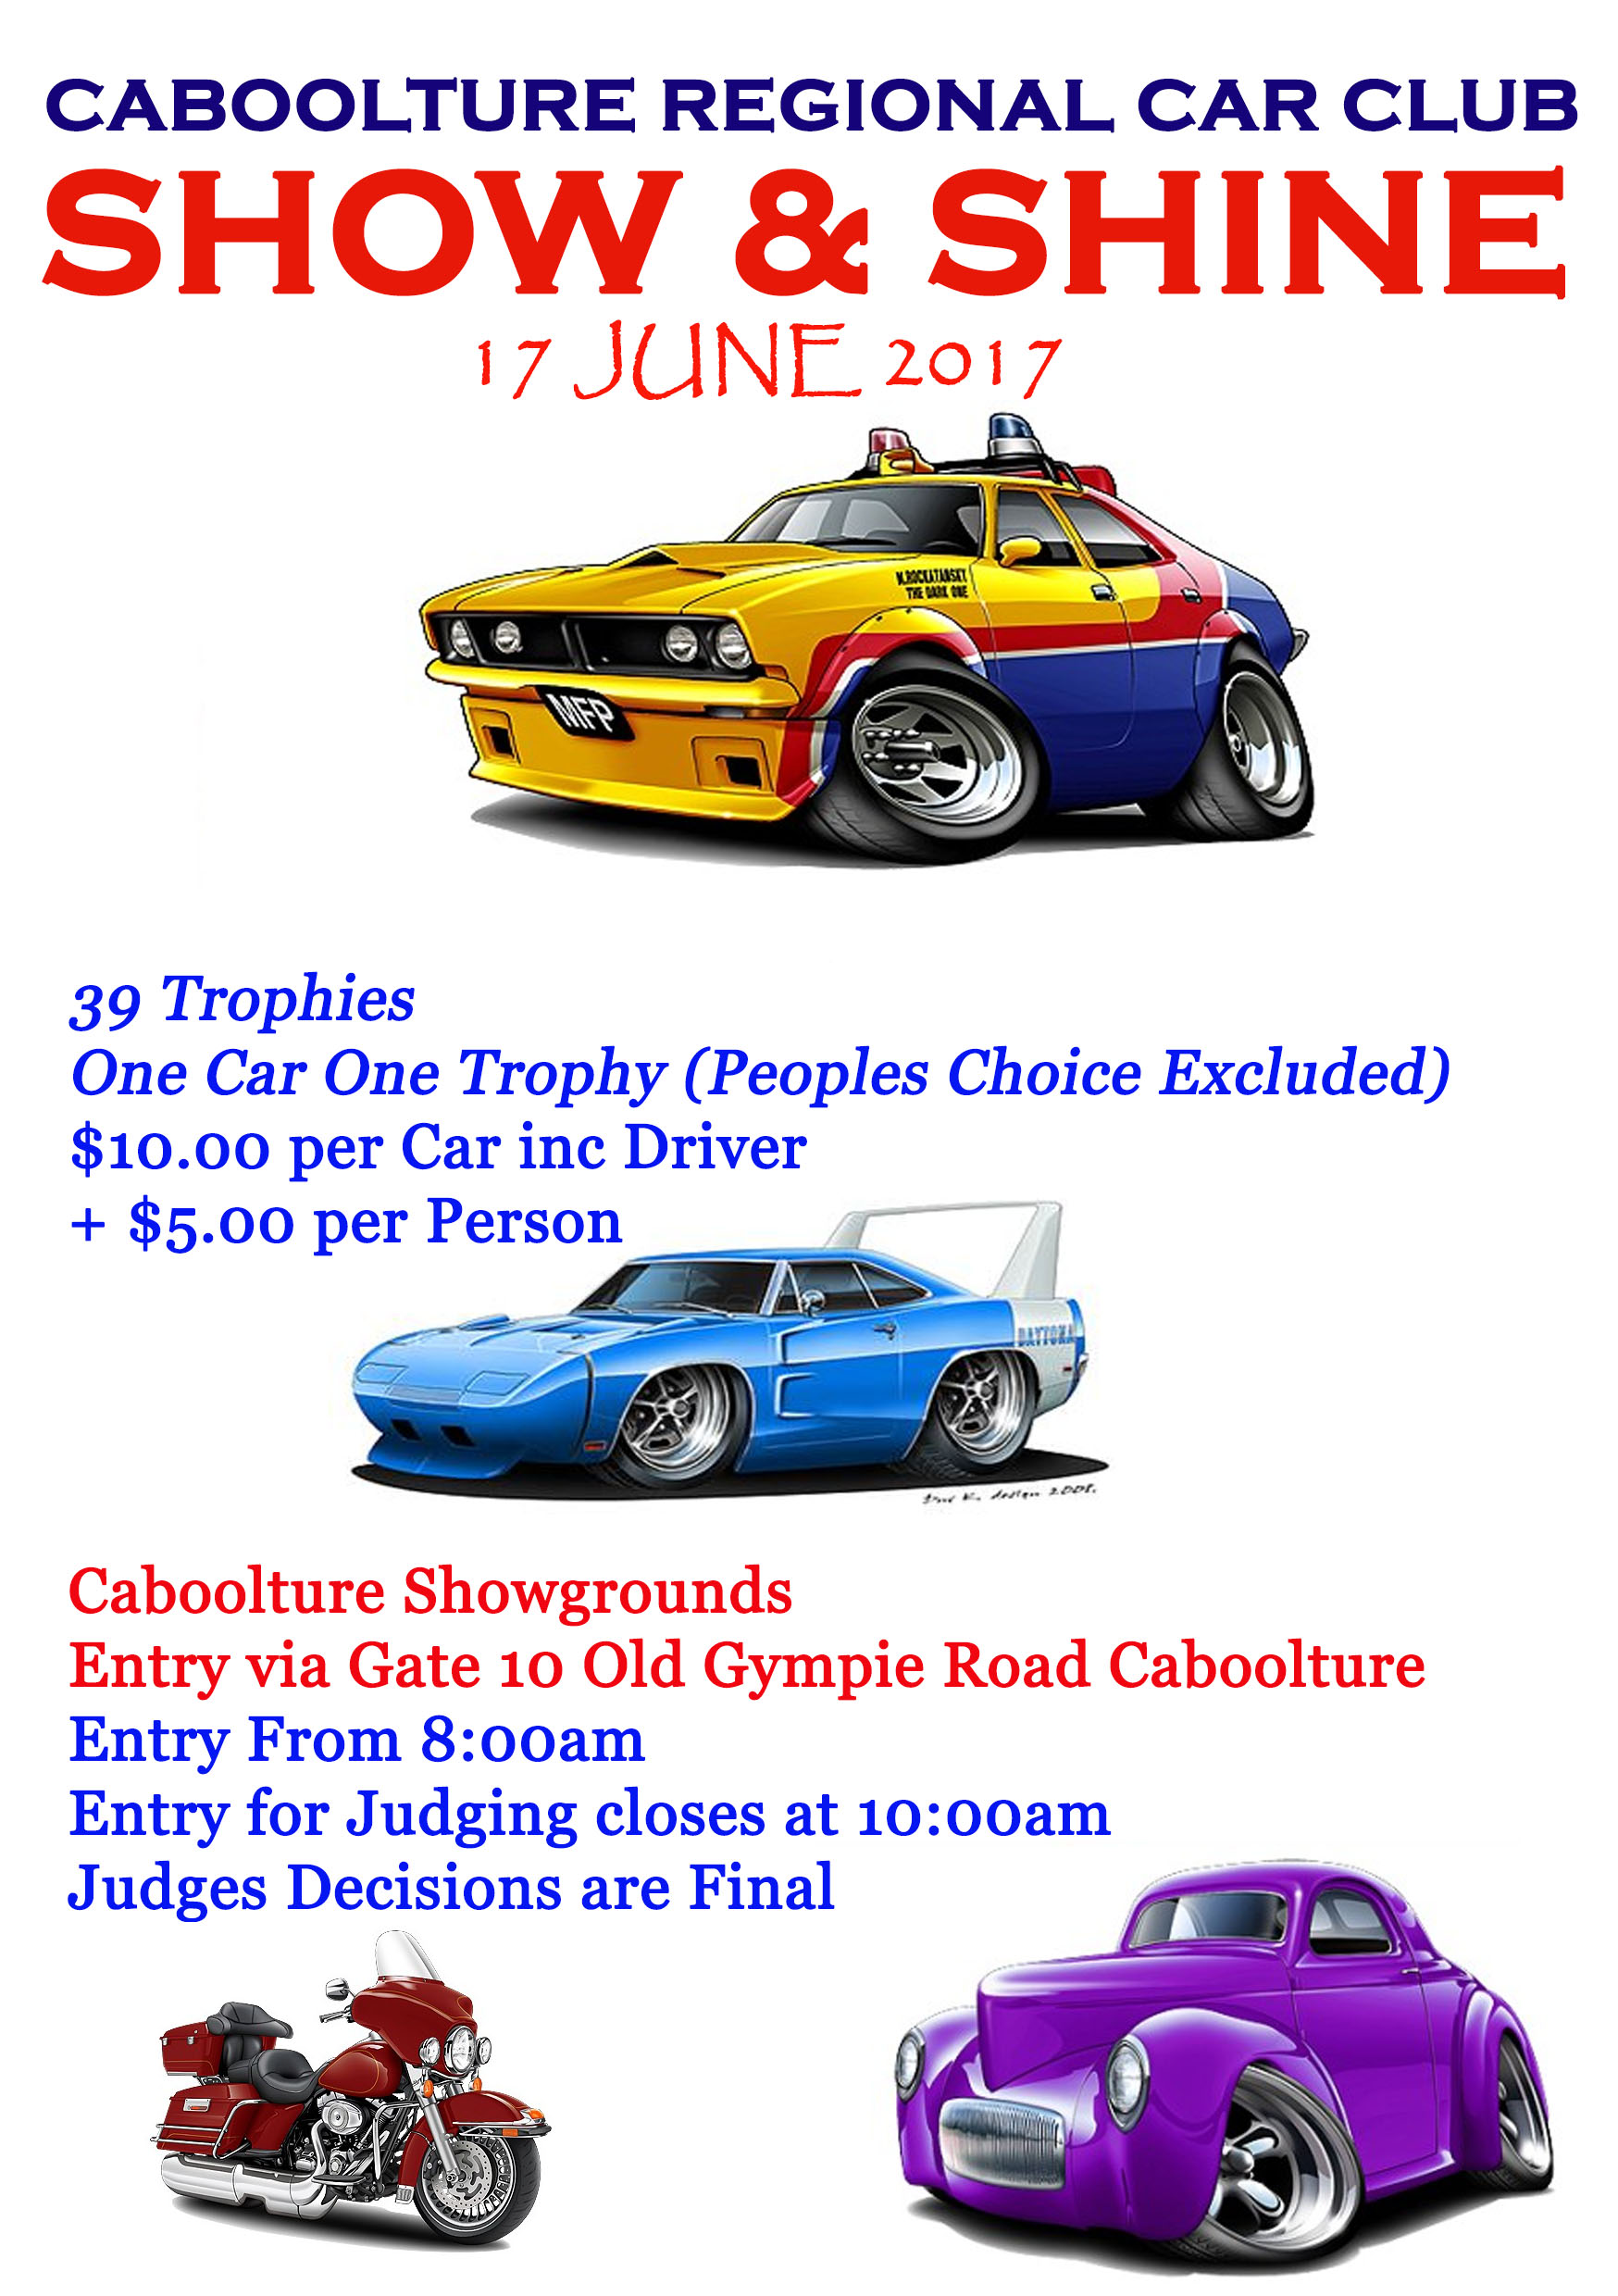 Caboolture Swap Show and Shine 17 June 2017 Show Template